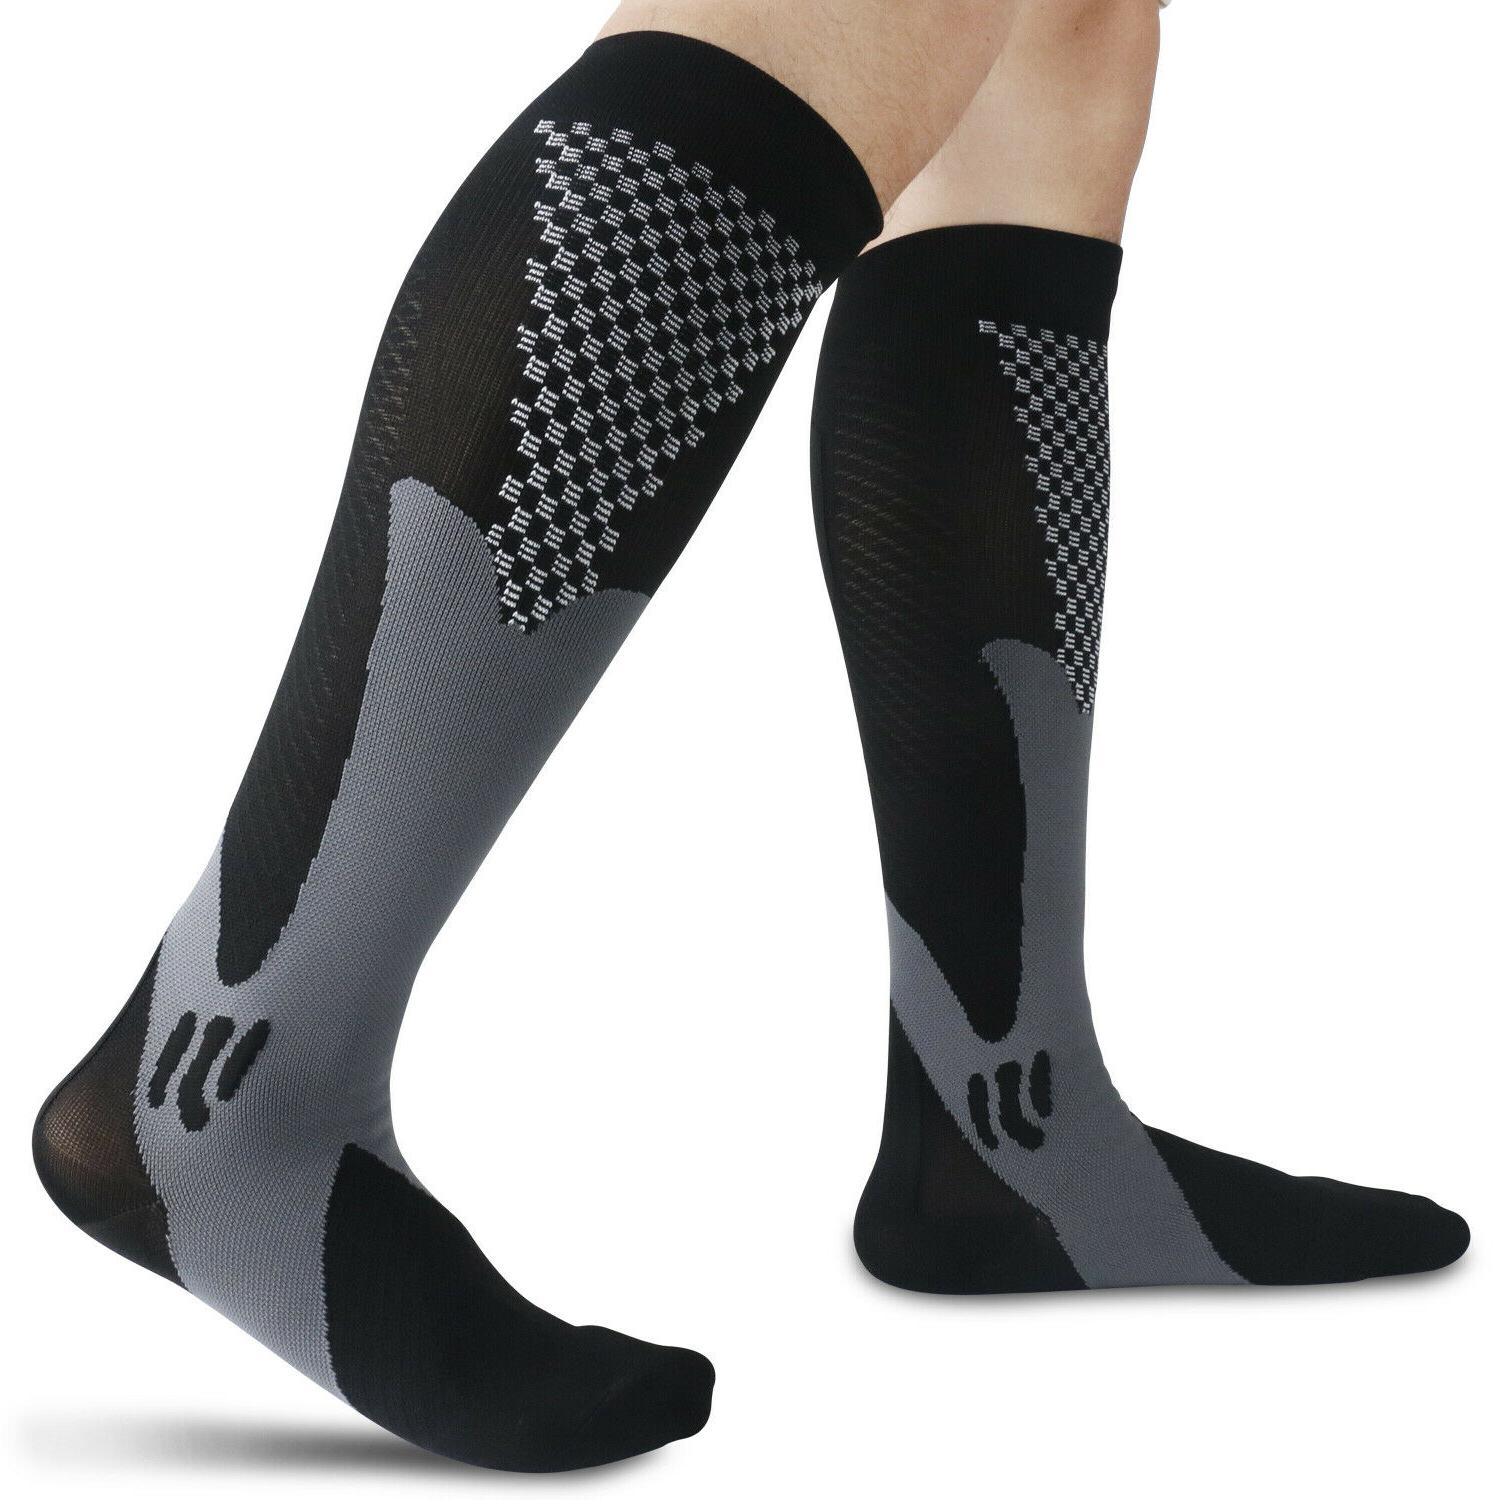 Sports Compression mmHg Leg Support Pain Relief For Men Women